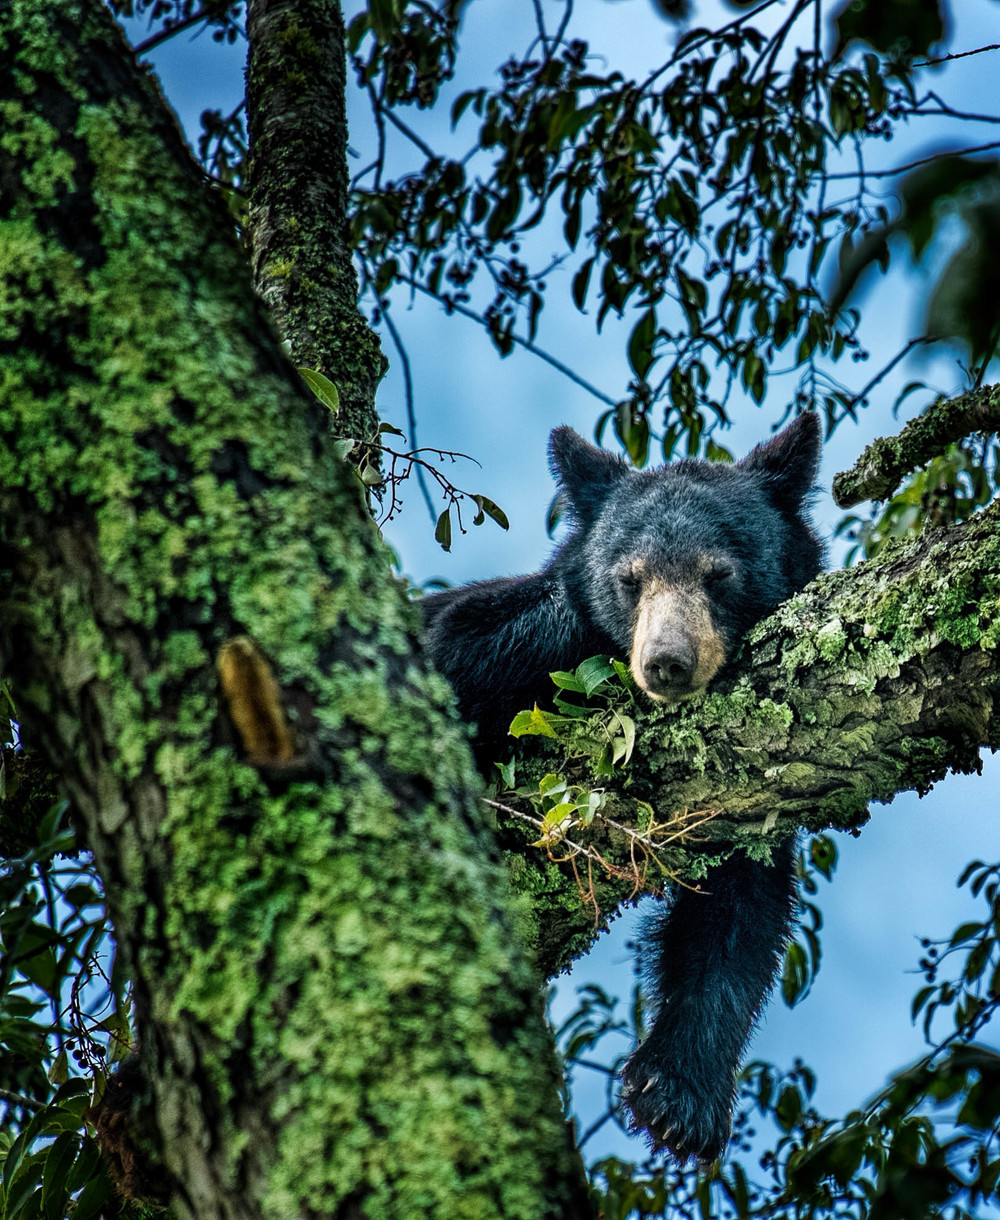 Black bear in the tree